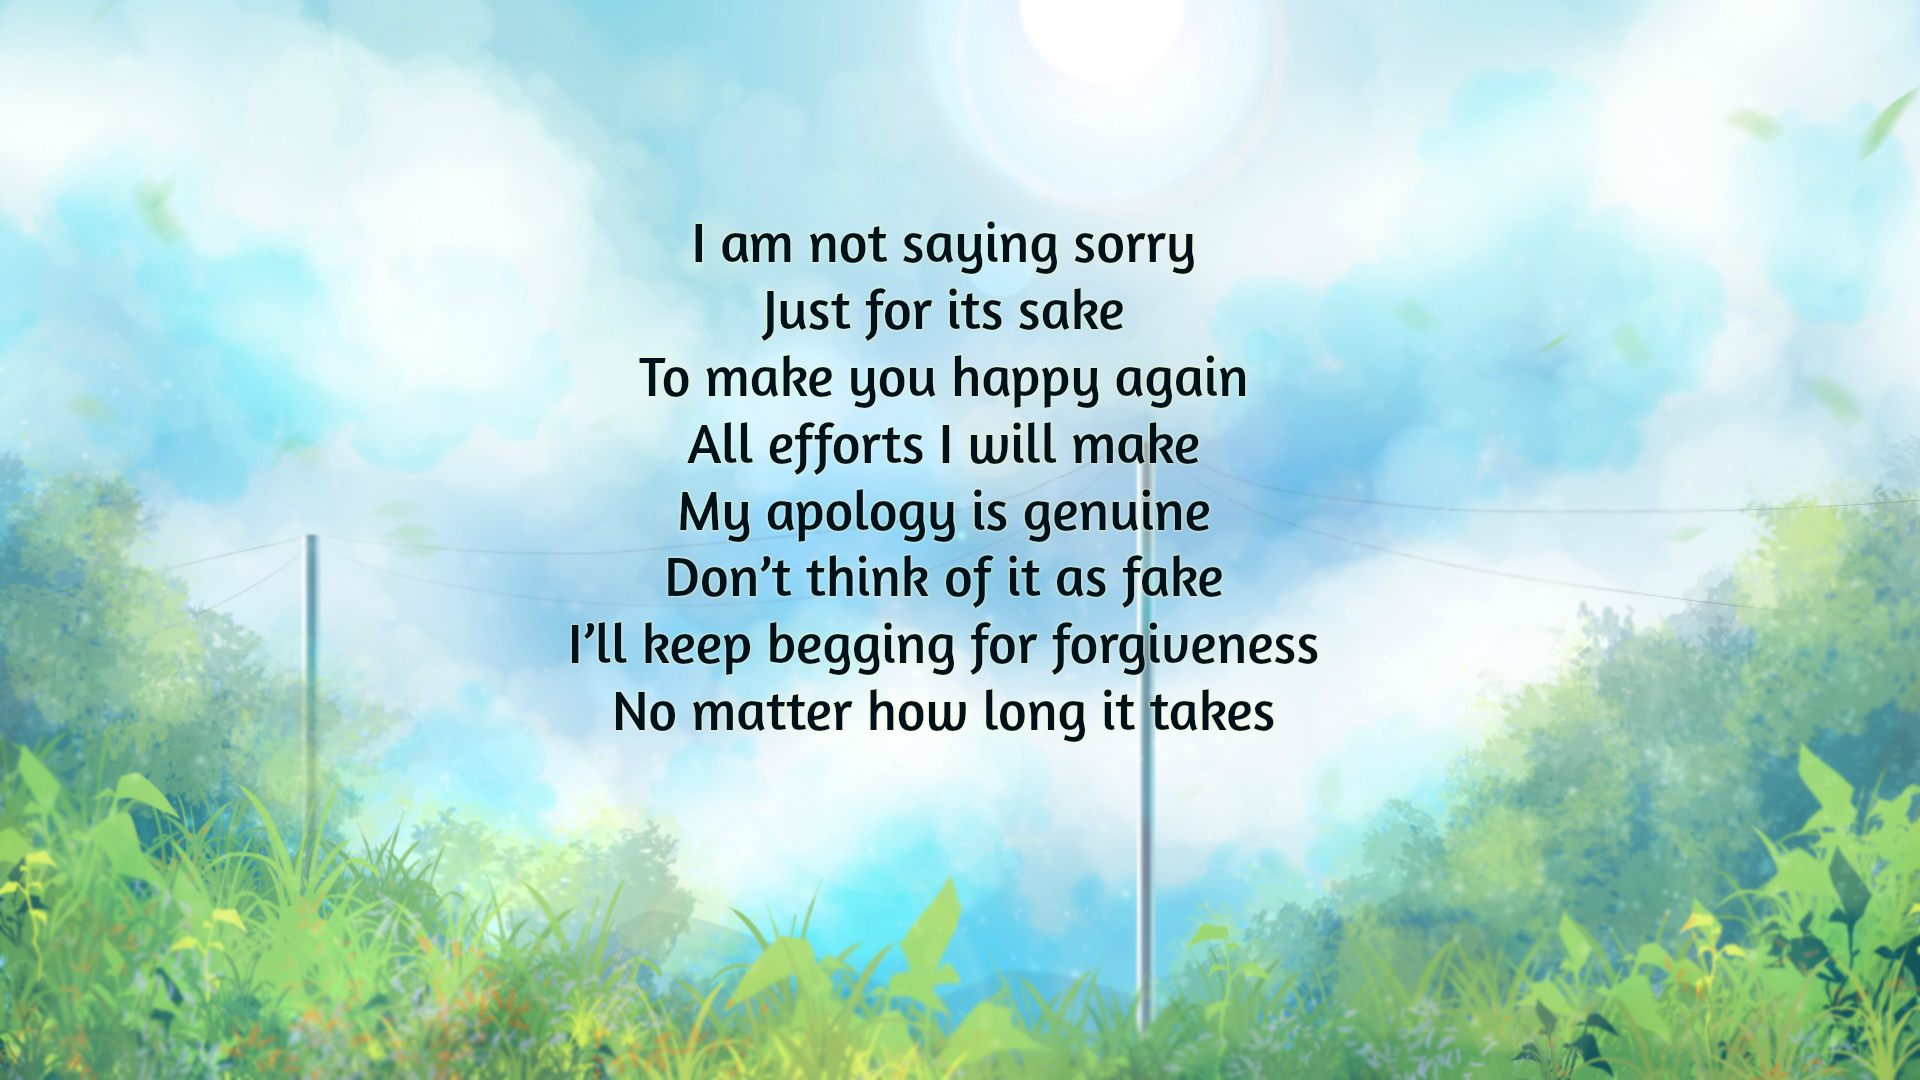 this is just to say poems of apology and forgiveness